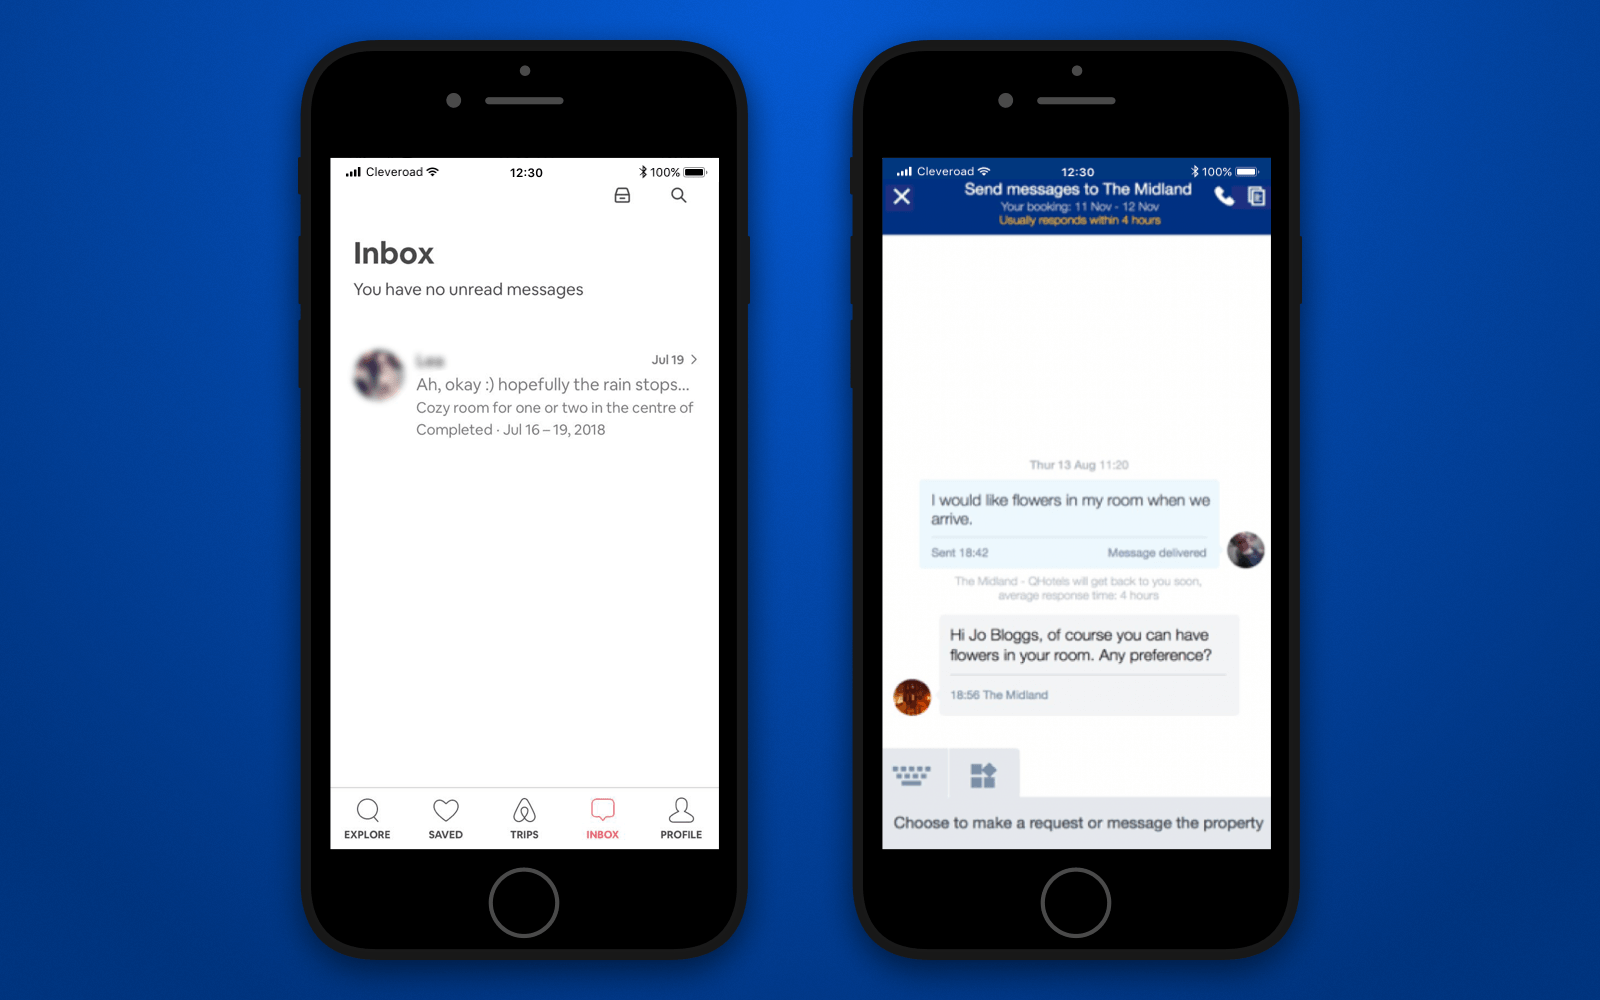 Developing a hotel booking app with built-in messenger